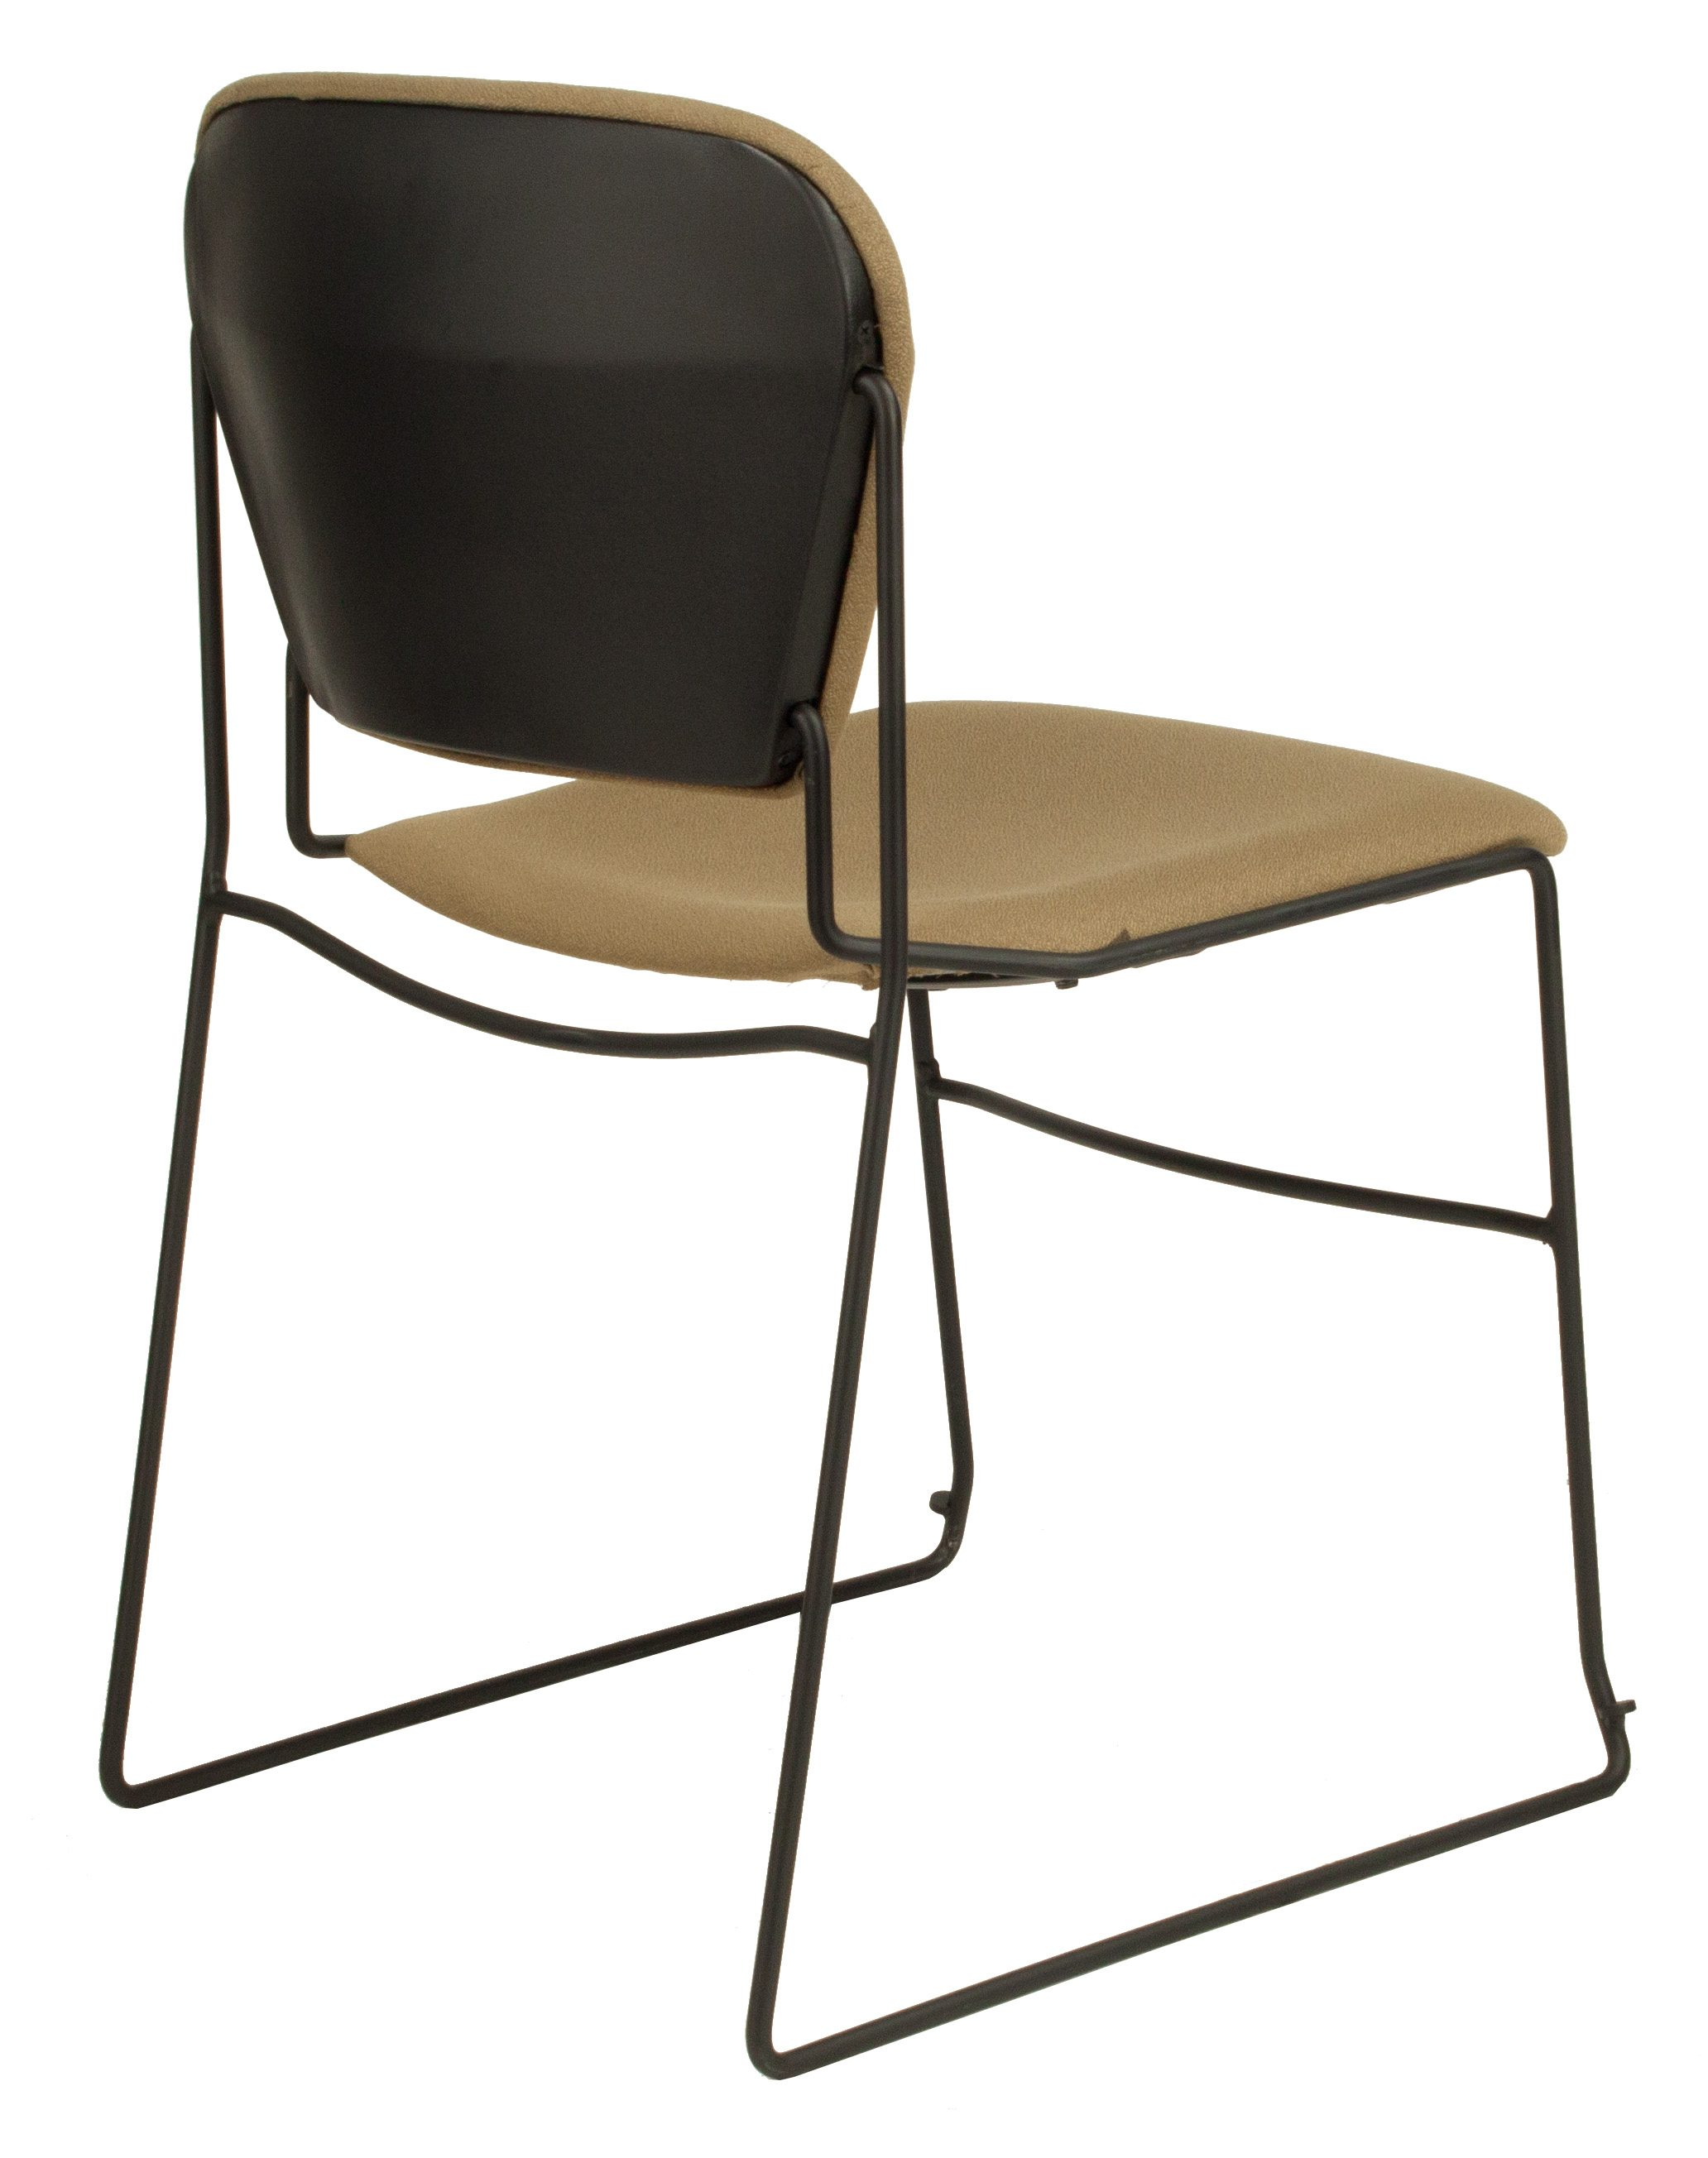 Ki Chairs Ki Perry Used Stack Chair Tan National Office Interiors